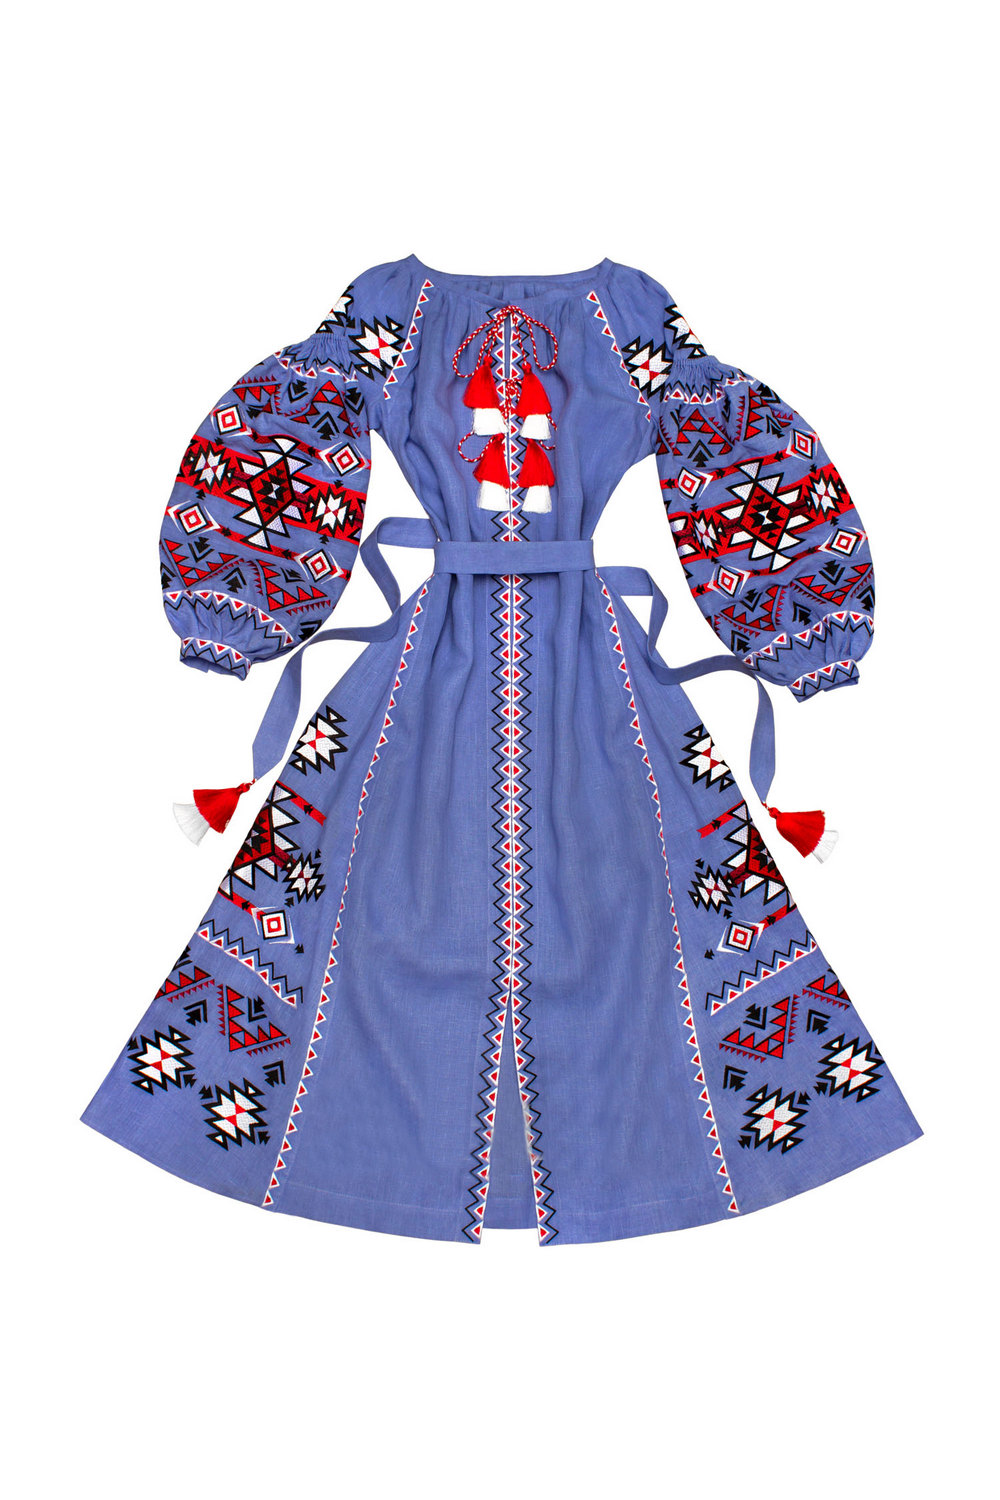 Buy Folk Festival Linen long Blue Ukrainian Vyshyvanka dress, Boho Hippie Comfortable embroidered dress